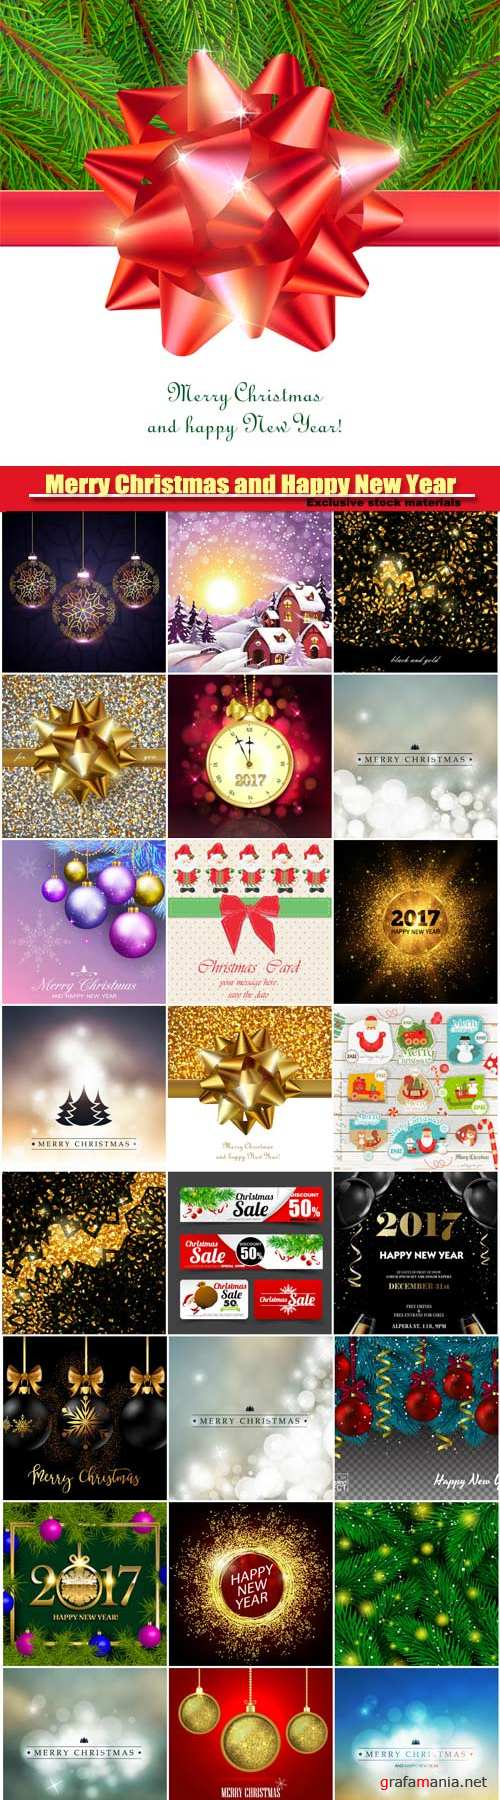 Merry Christmas and Happy New Year vector, festive background for greeting card, shiny decorative sign